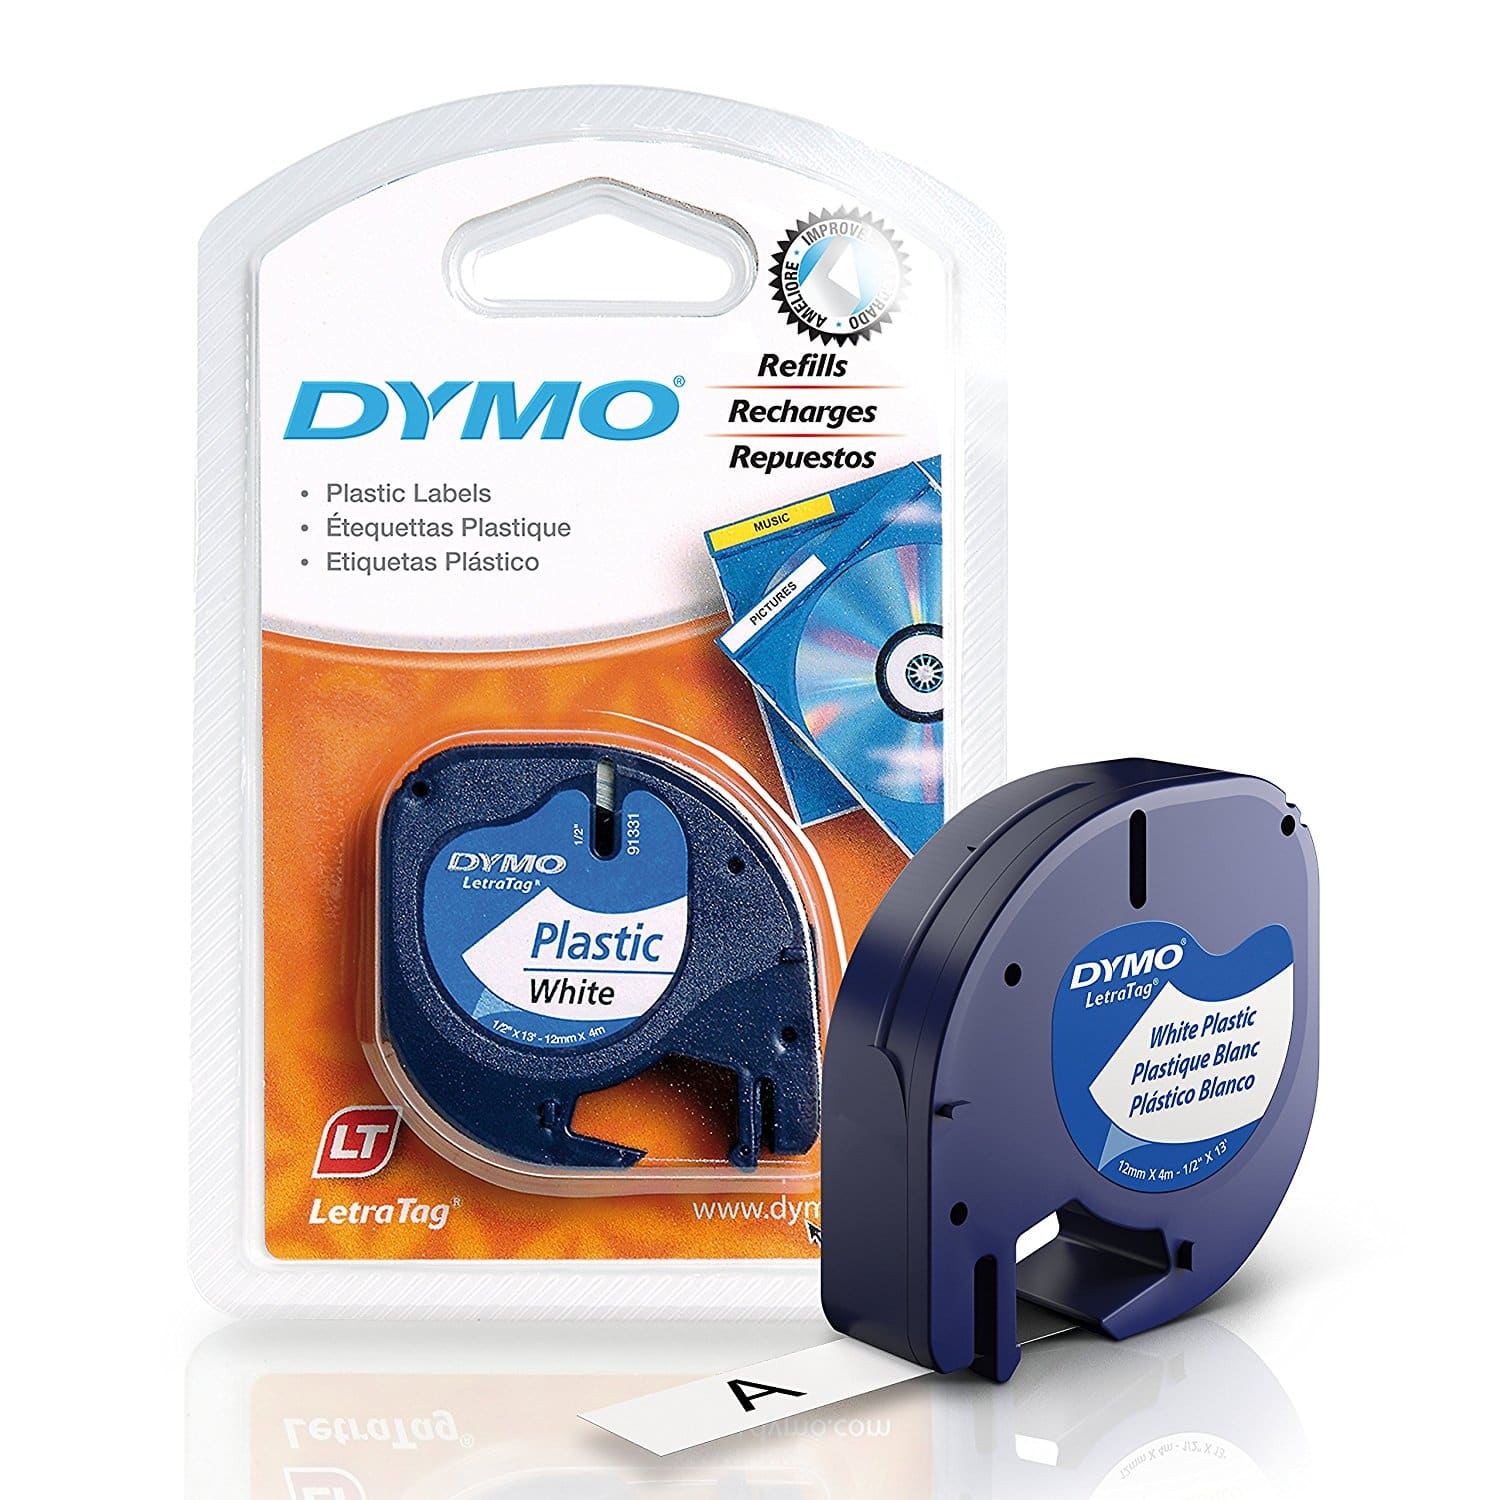 2.27 AC: DYMO LetraTag Labeling Tape for LetraTag Label Makers, 1 roll  @ Amazon $2.27